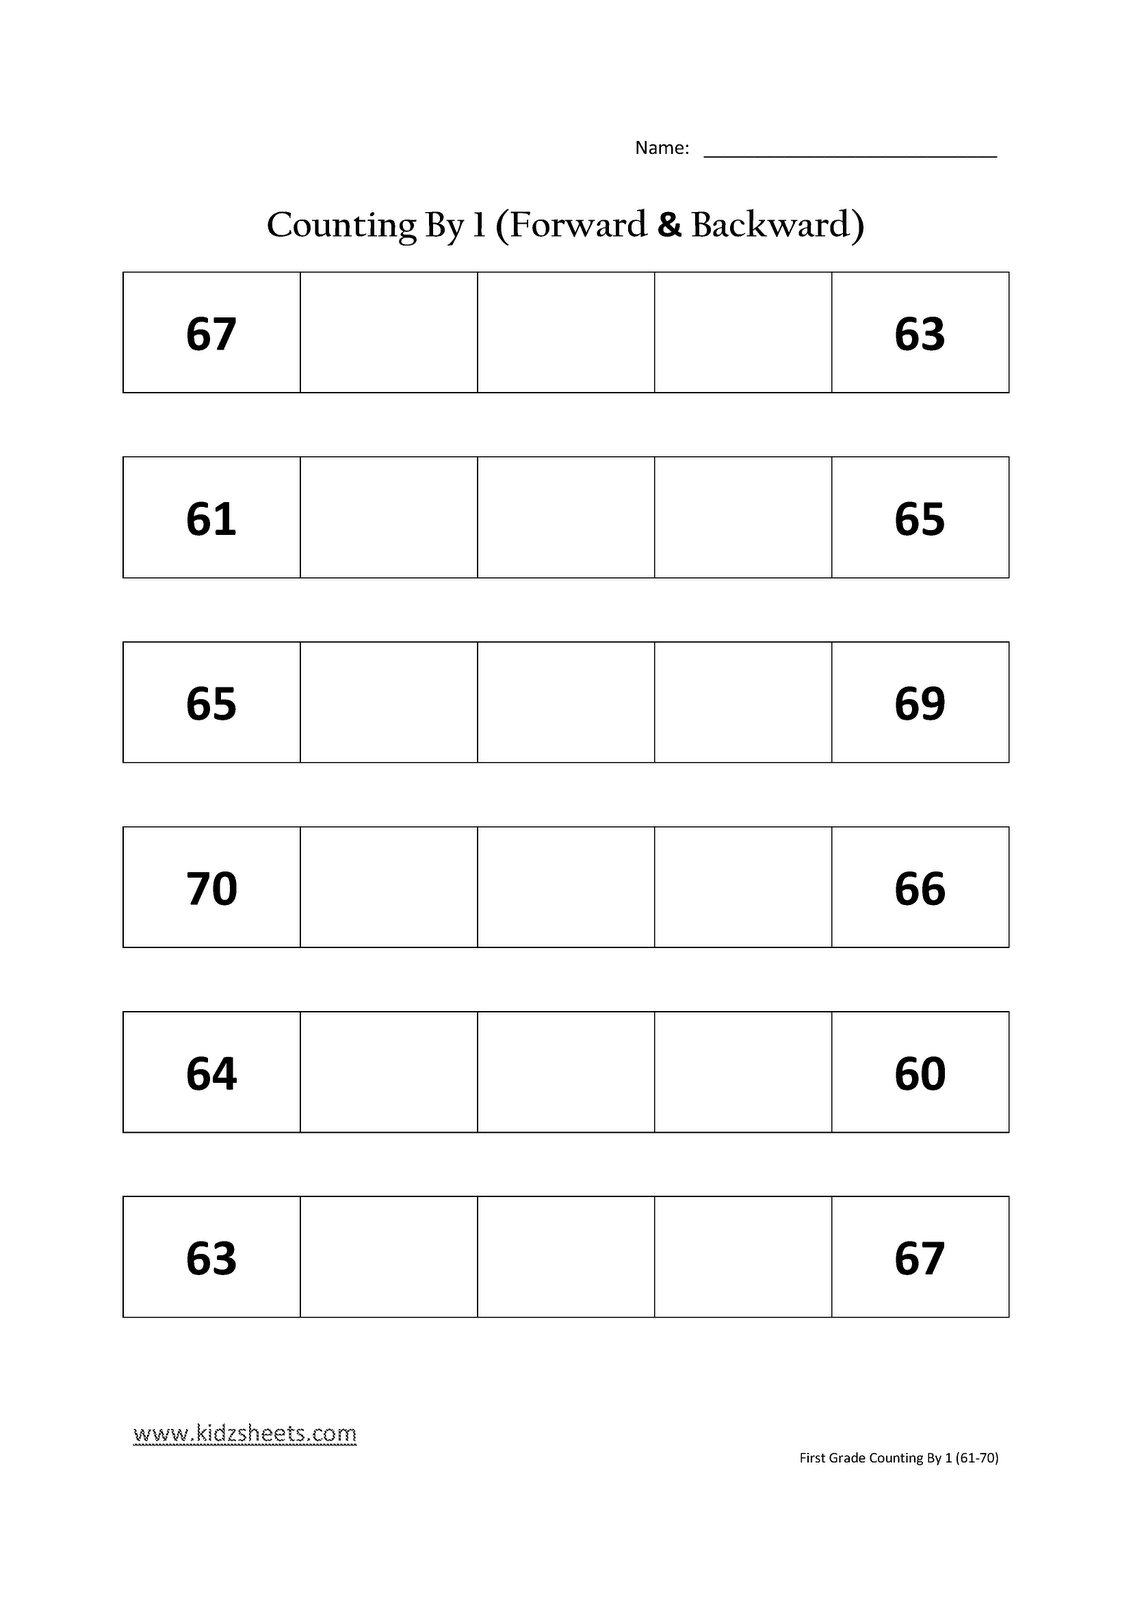 medium resolution of Kidz Worksheets: First Grade Counting by 1 (61-70)